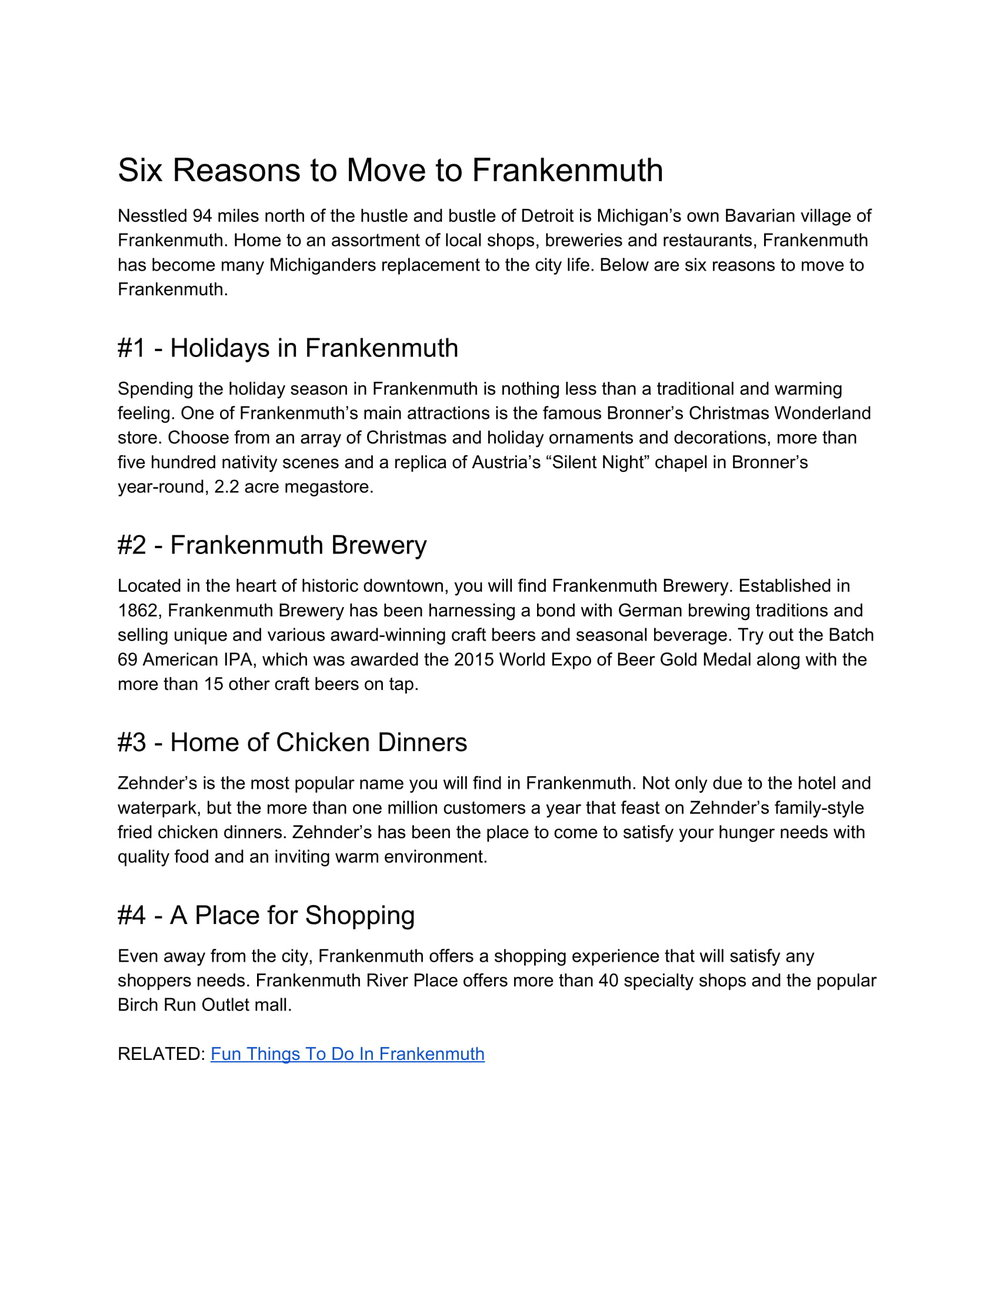 IV - Reasons To Move To Frankenmuth-1.jpg